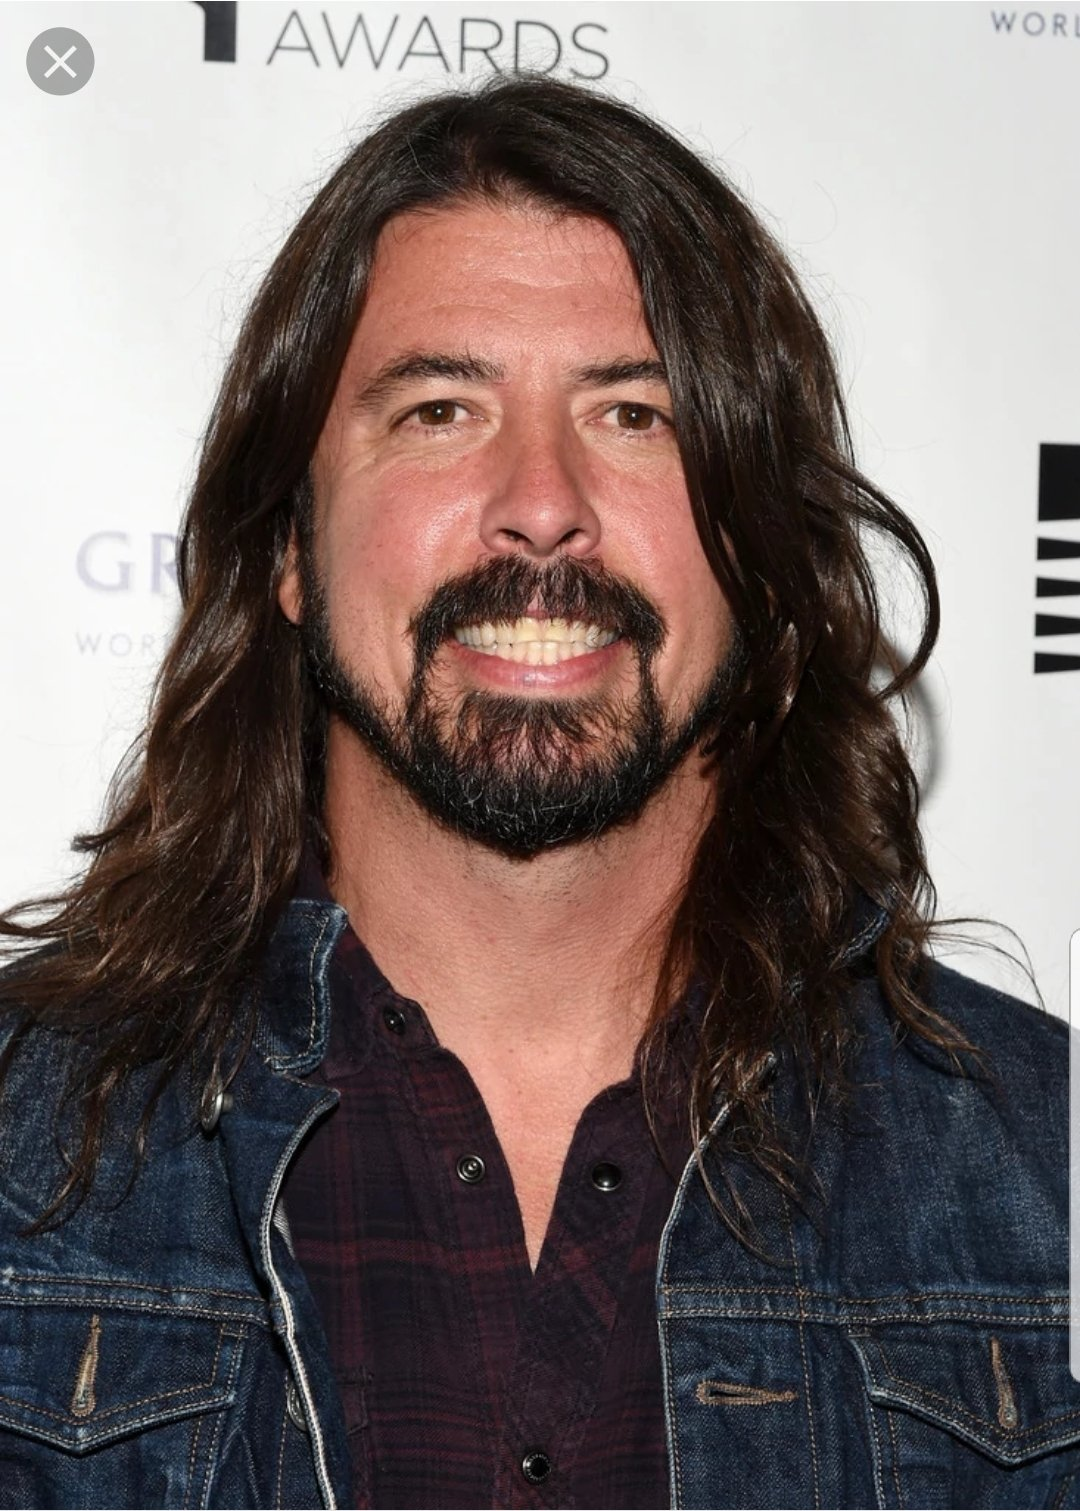 Happy 50th birthday to the rock God that is Dave Grohl